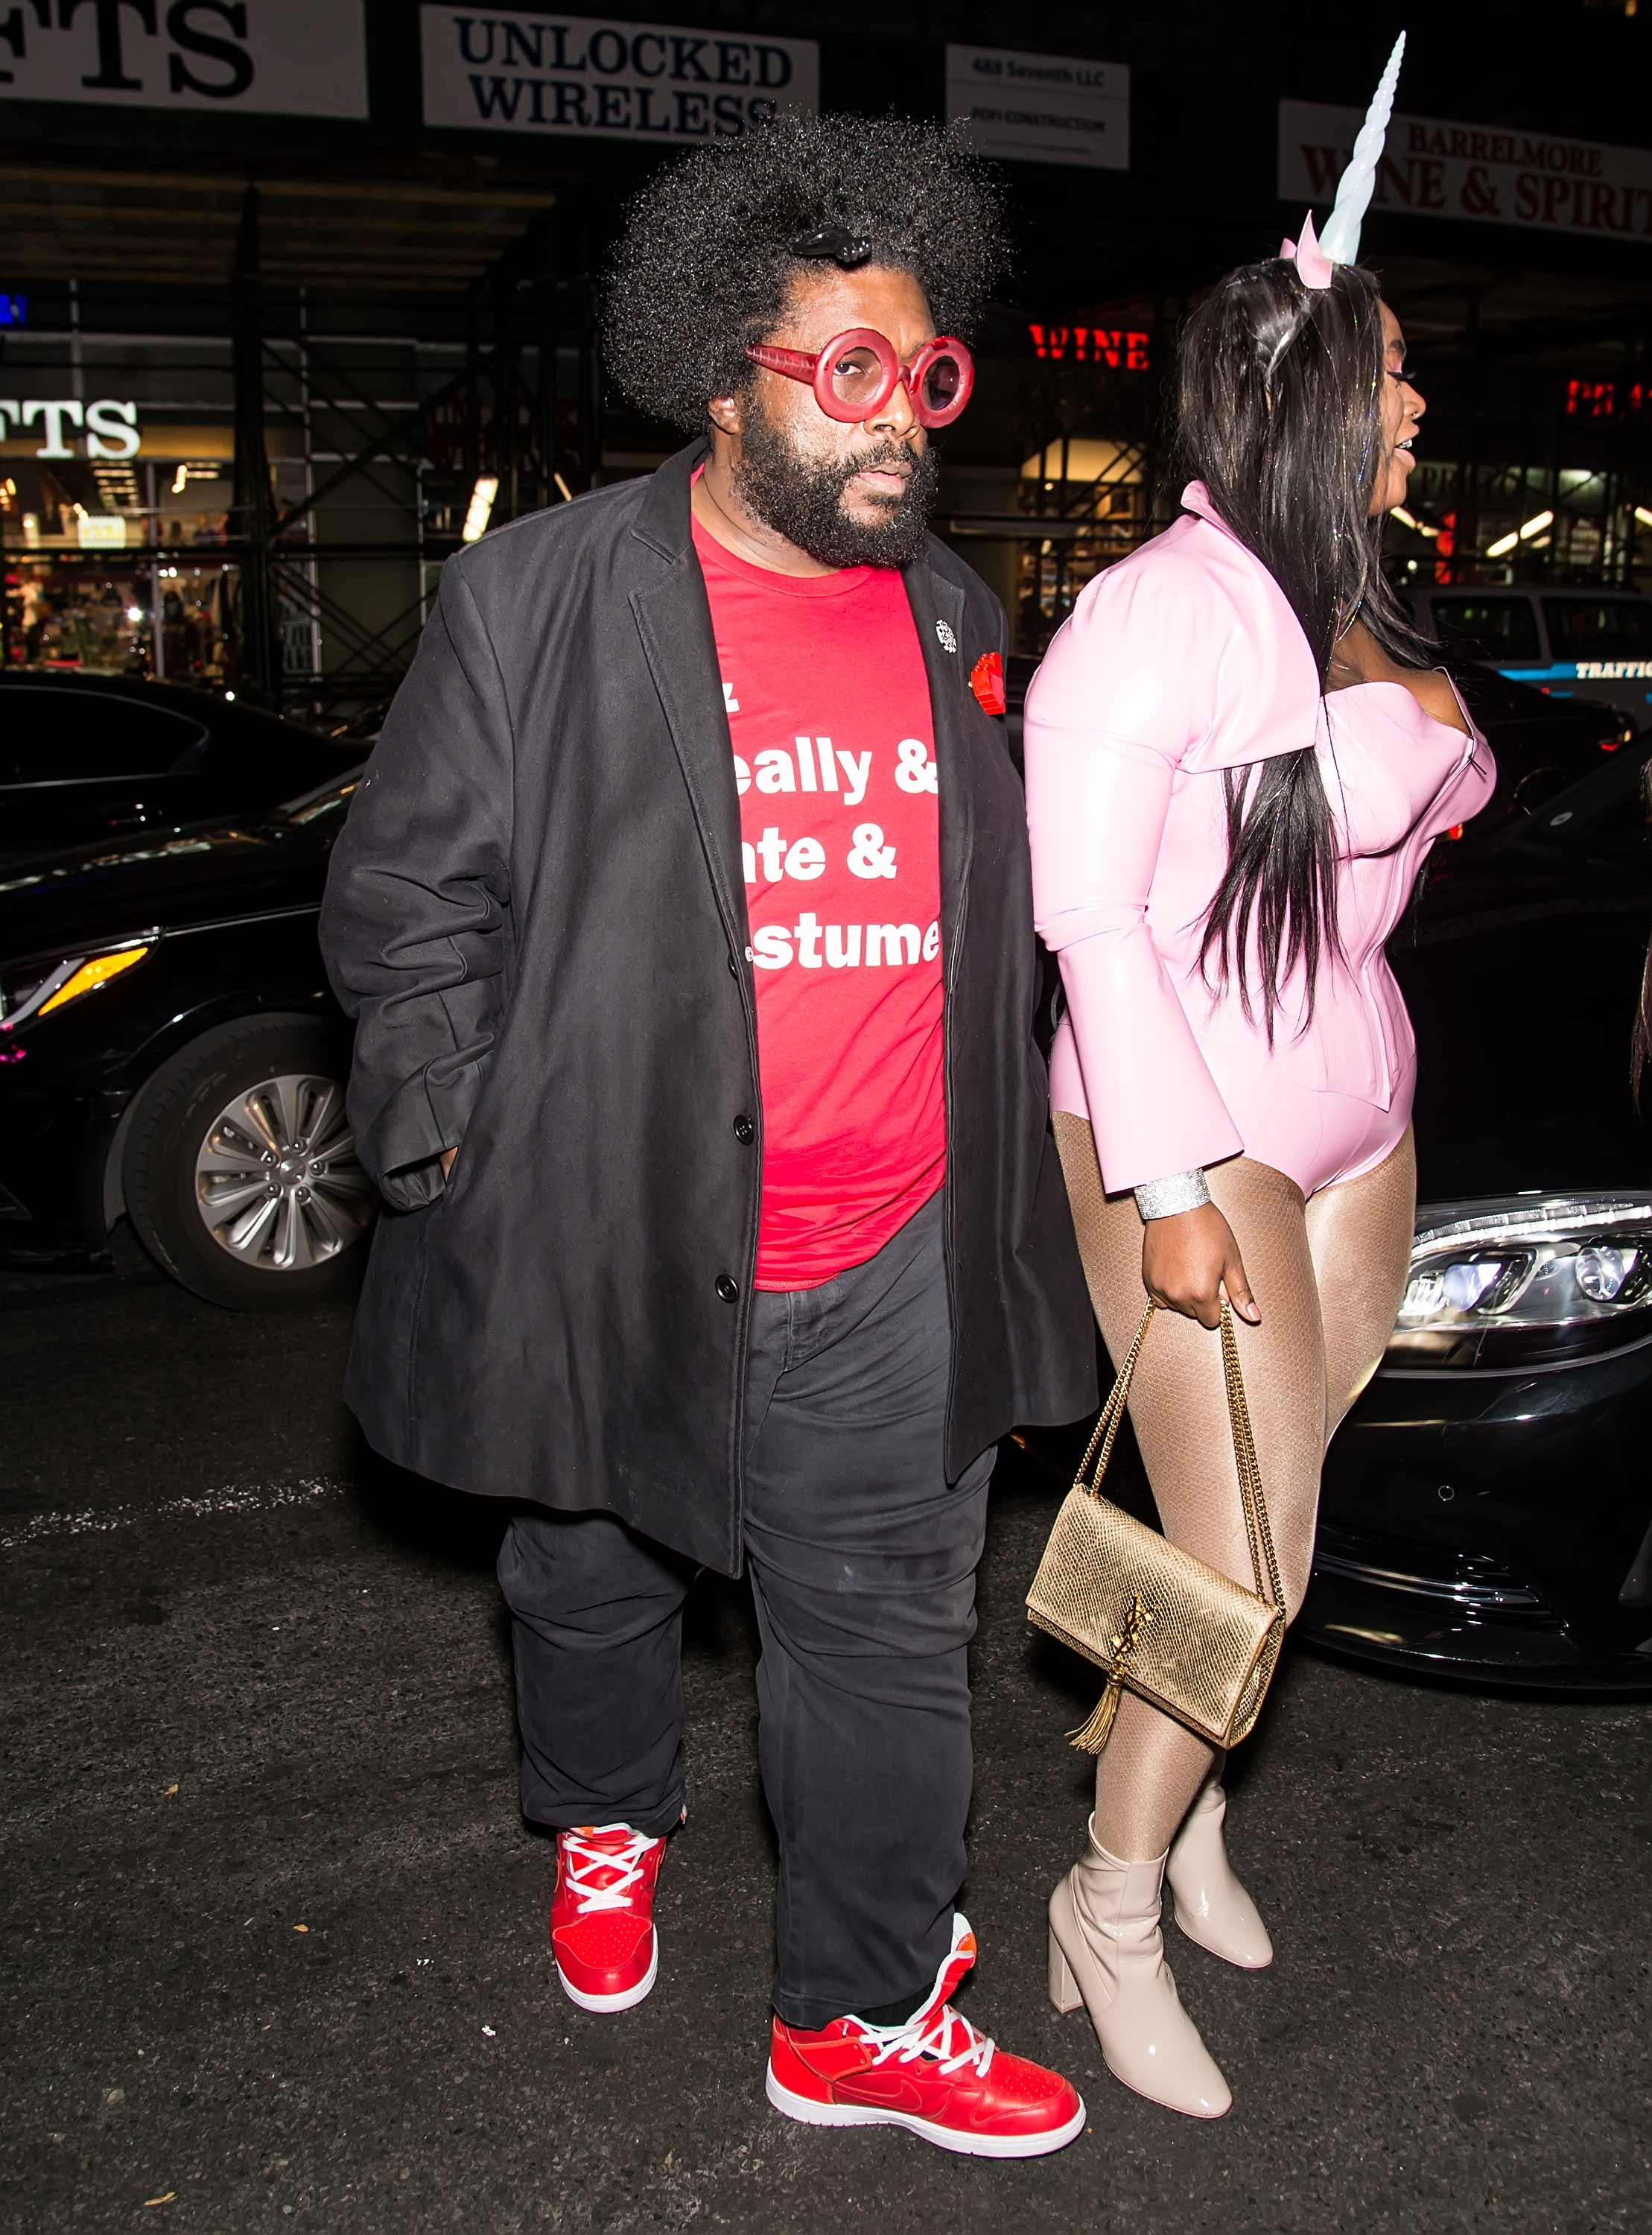 Questlove went for a tongue-in-cheek costume for this year's party